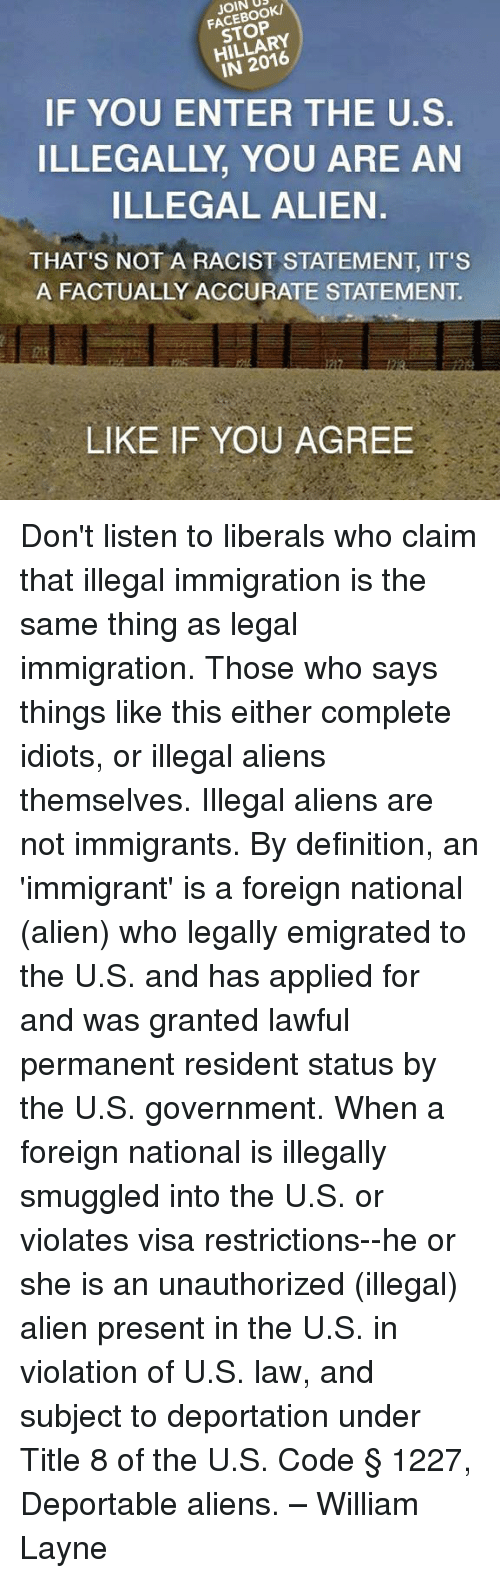 Illegal Alien: JOIN DRK  STOP  IN 2016  IF YOU ENTER THE U.S.  ILLEGALLY YOU ARE AN  ILLEGAL ALIEN.  THAT'S NOT A RACIST STATEMENT IT'S  A FACTUALLY ACCURATE STATEMENT  LIKE IF YOU AGREE Don't listen to liberals who claim that illegal immigration is the same thing as legal immigration. Those who says things like this either complete idiots, or illegal aliens themselves. Illegal aliens are not immigrants. By definition, an 'immigrant' is a foreign national (alien) who legally emigrated to the U.S. and has applied for and was granted lawful permanent resident status by the U.S. government. When a foreign national is illegally smuggled into the U.S. or violates visa restrictions--he or she is an unauthorized (illegal) alien present in the U.S. in violation of U.S. law, and subject to deportation under Title 8 of the U.S. Code § 1227, Deportable aliens. – William Layne